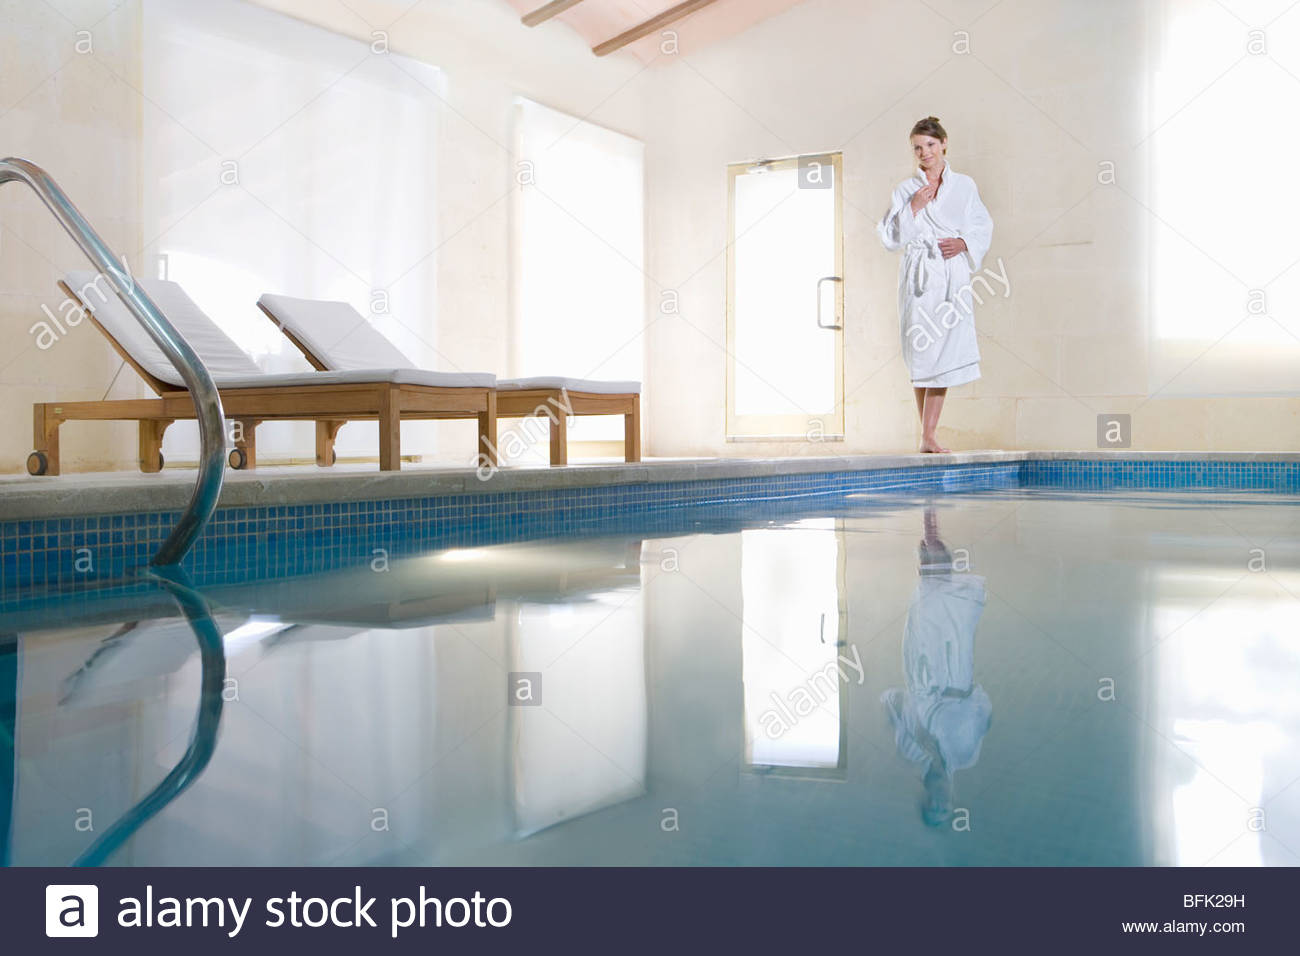 Woman in bathrobe standing at poolside - Stock Image